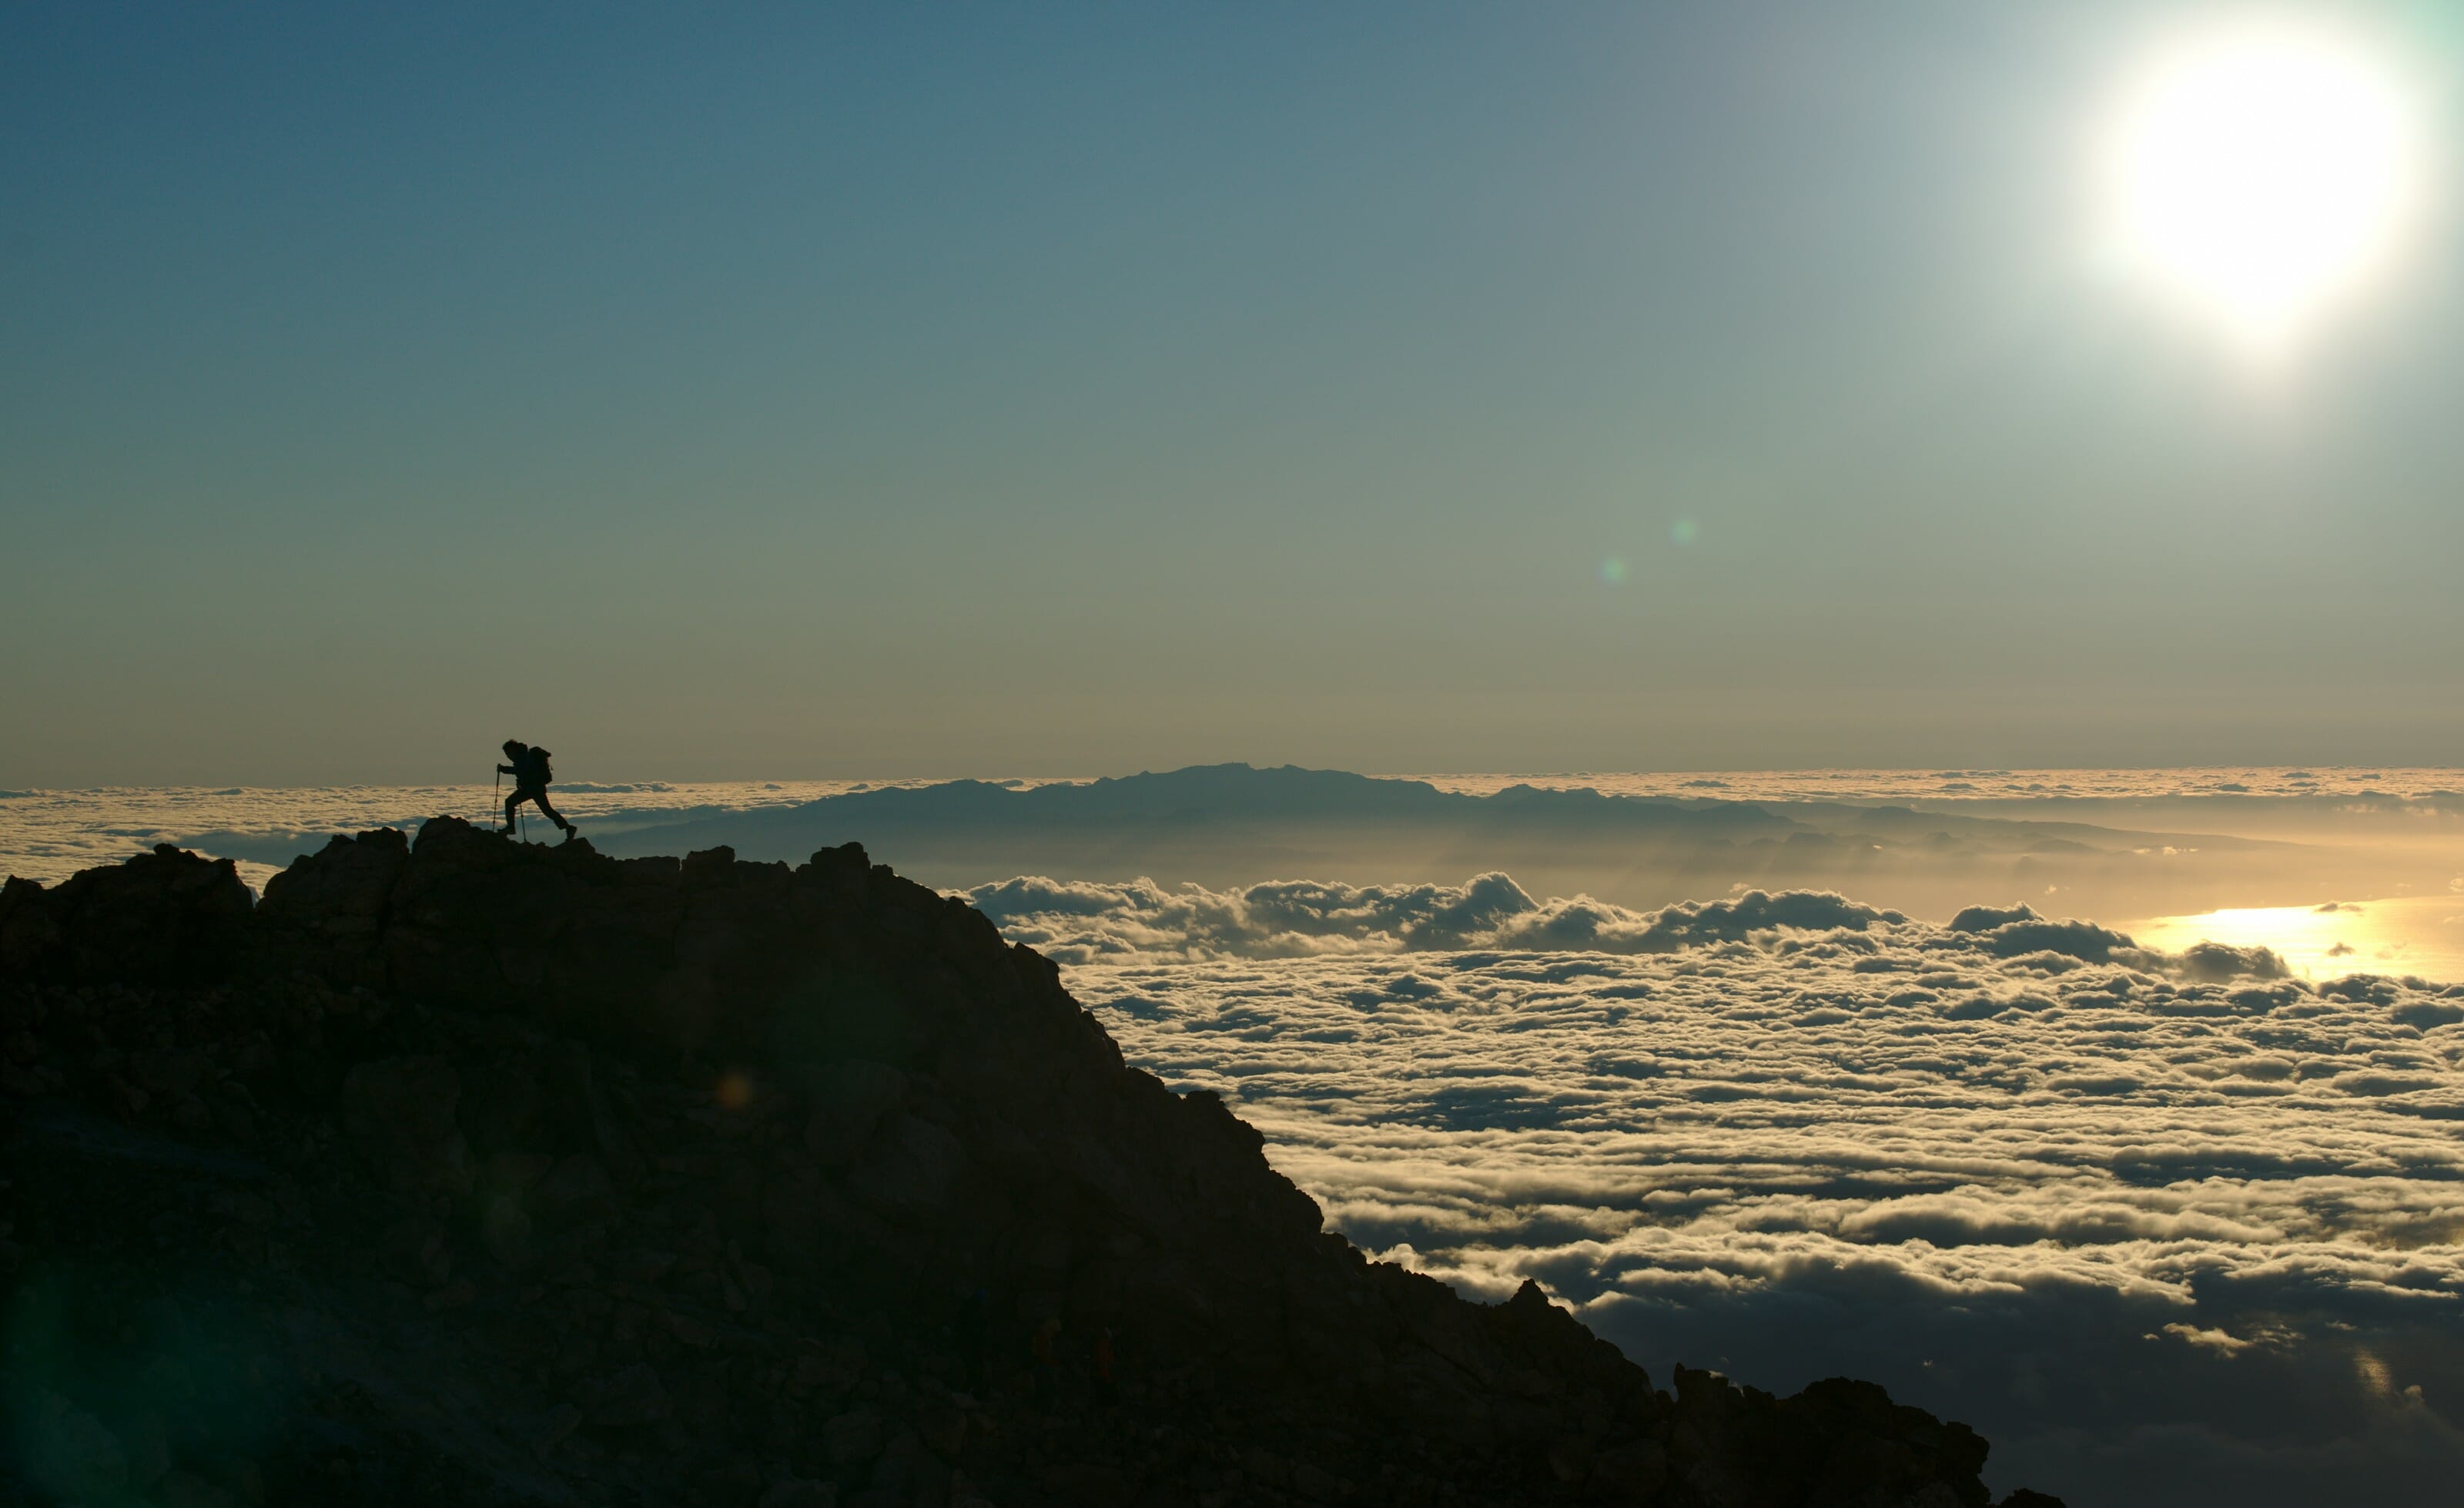 ascension-teide